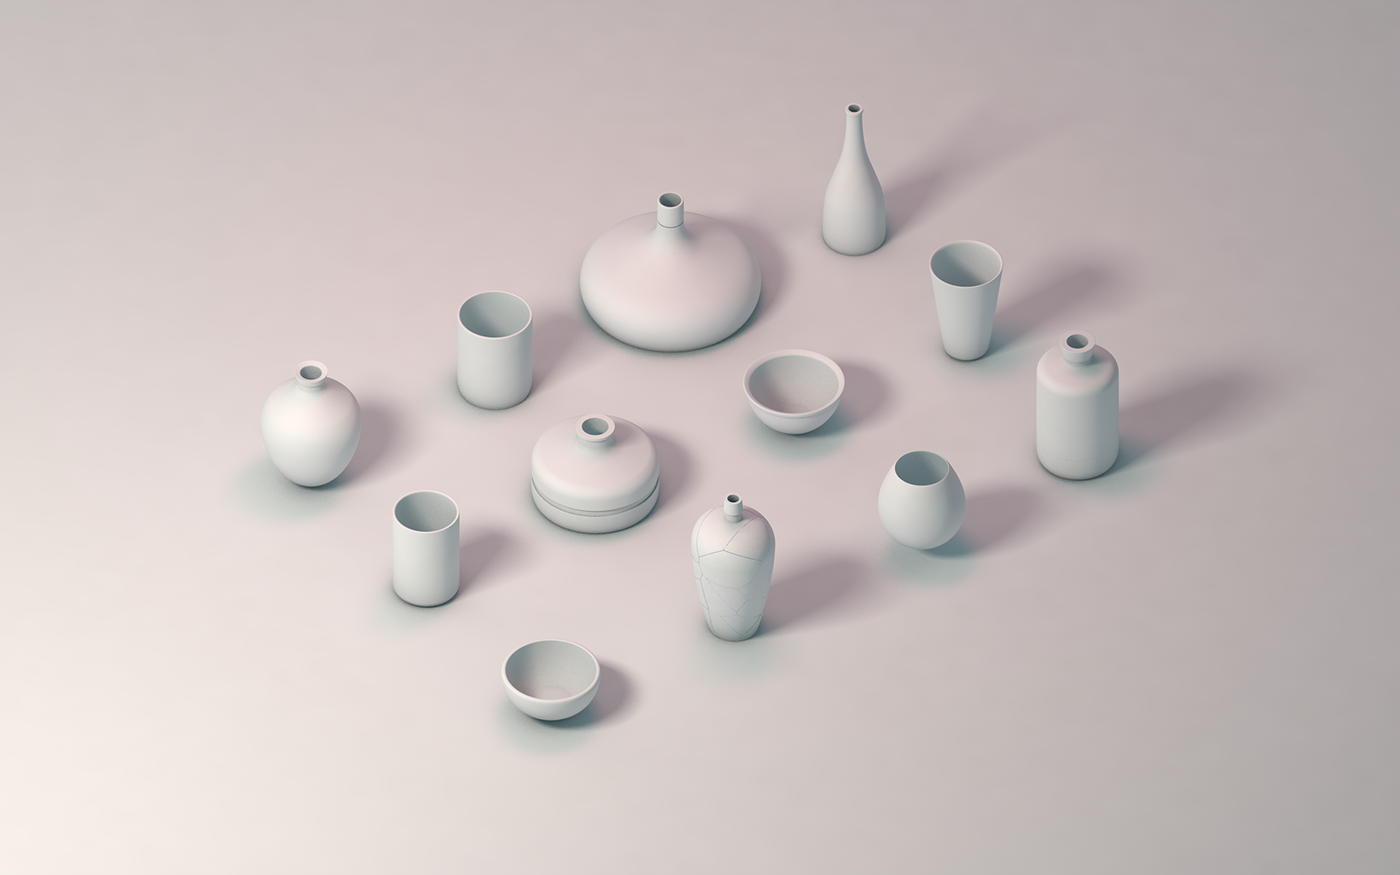 Ceramic Therapy in 3D using Cinema 4D